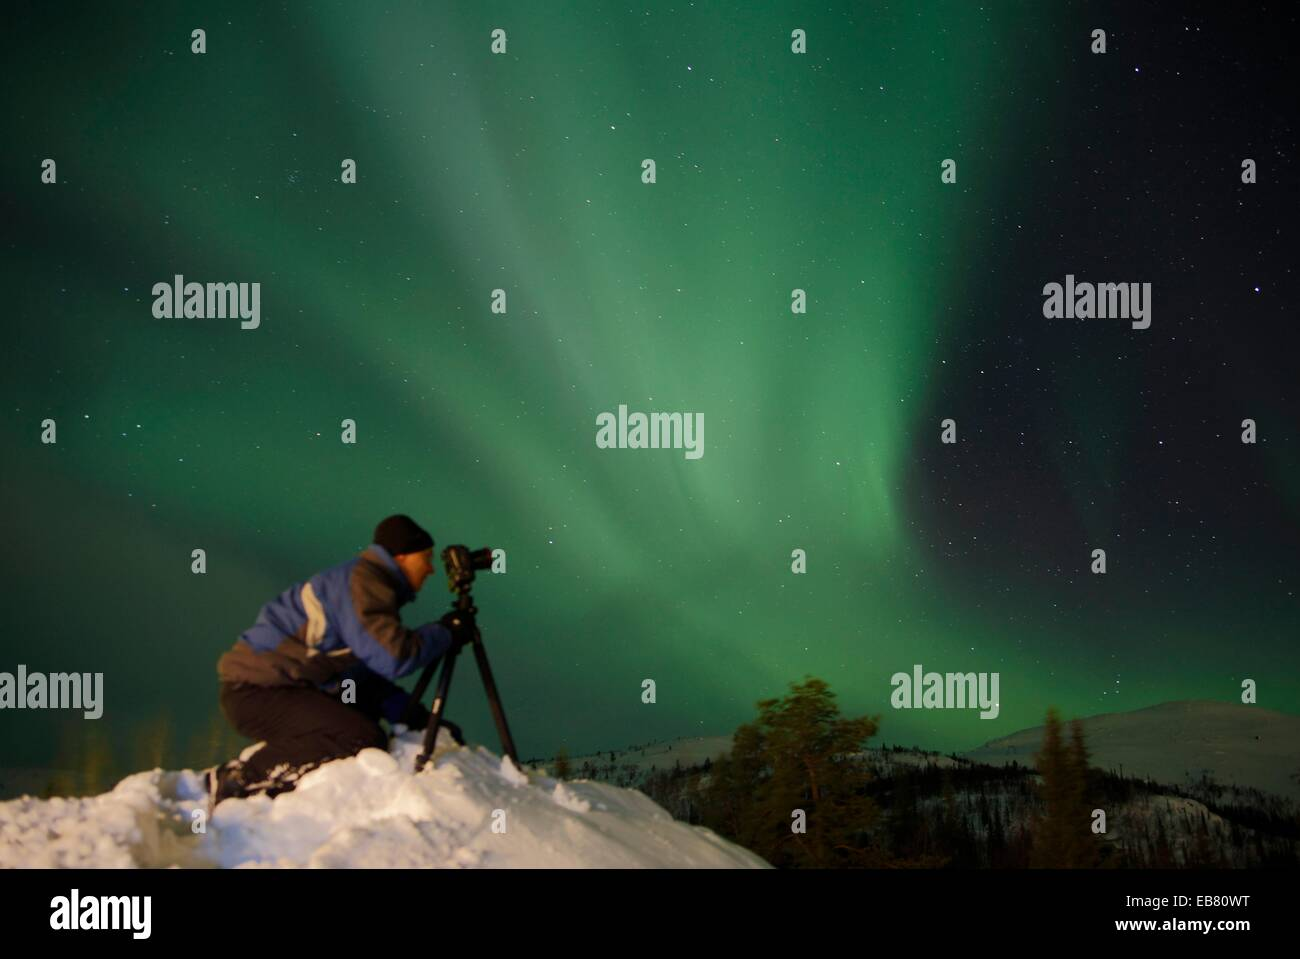 Northern lights Aurora borealis Gällivare Lappland Sweden. - Stock Image